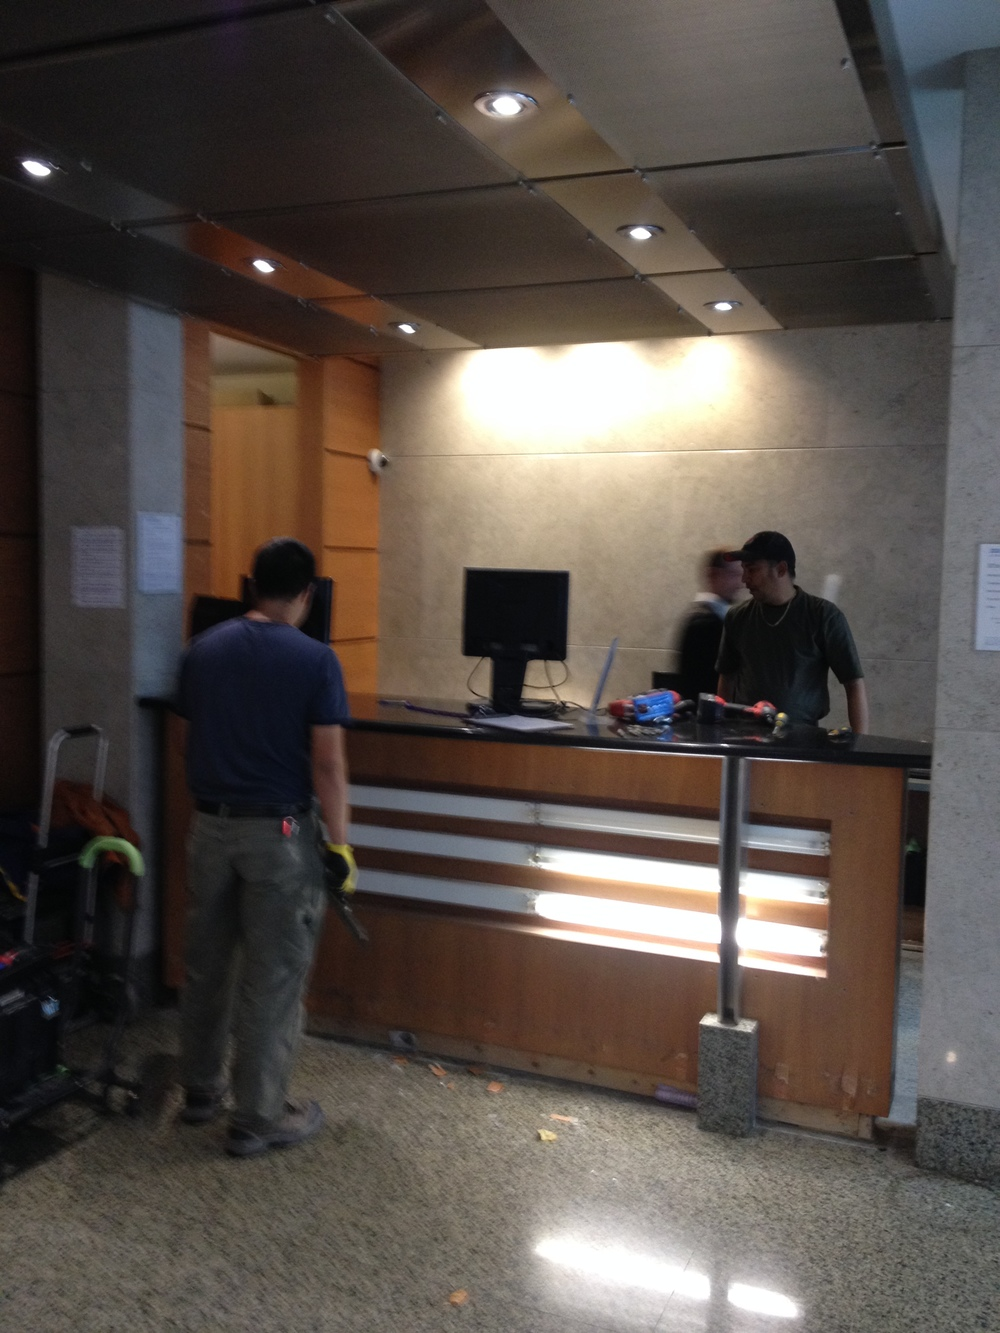 Old Security Desk Being Removed